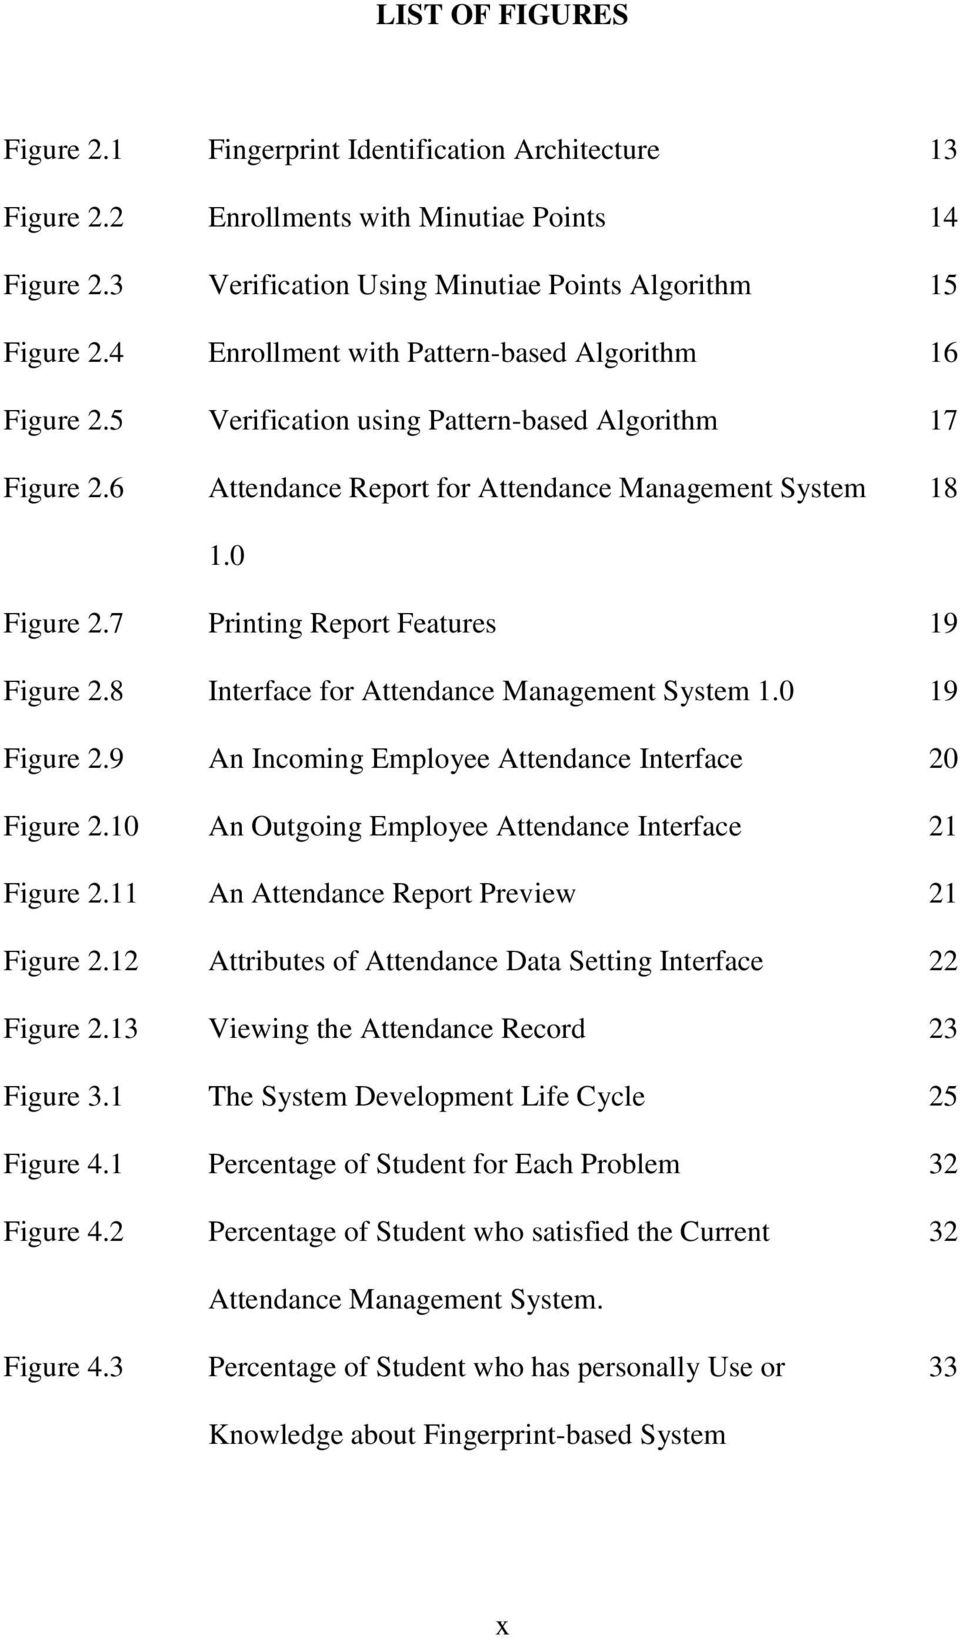 7 Printing Report Features 19 Figure 2.8 Interface for Attendance Management System 1.0 19 Figure 2.9 An Incoming Employee Attendance Interface 20 Figure 2.